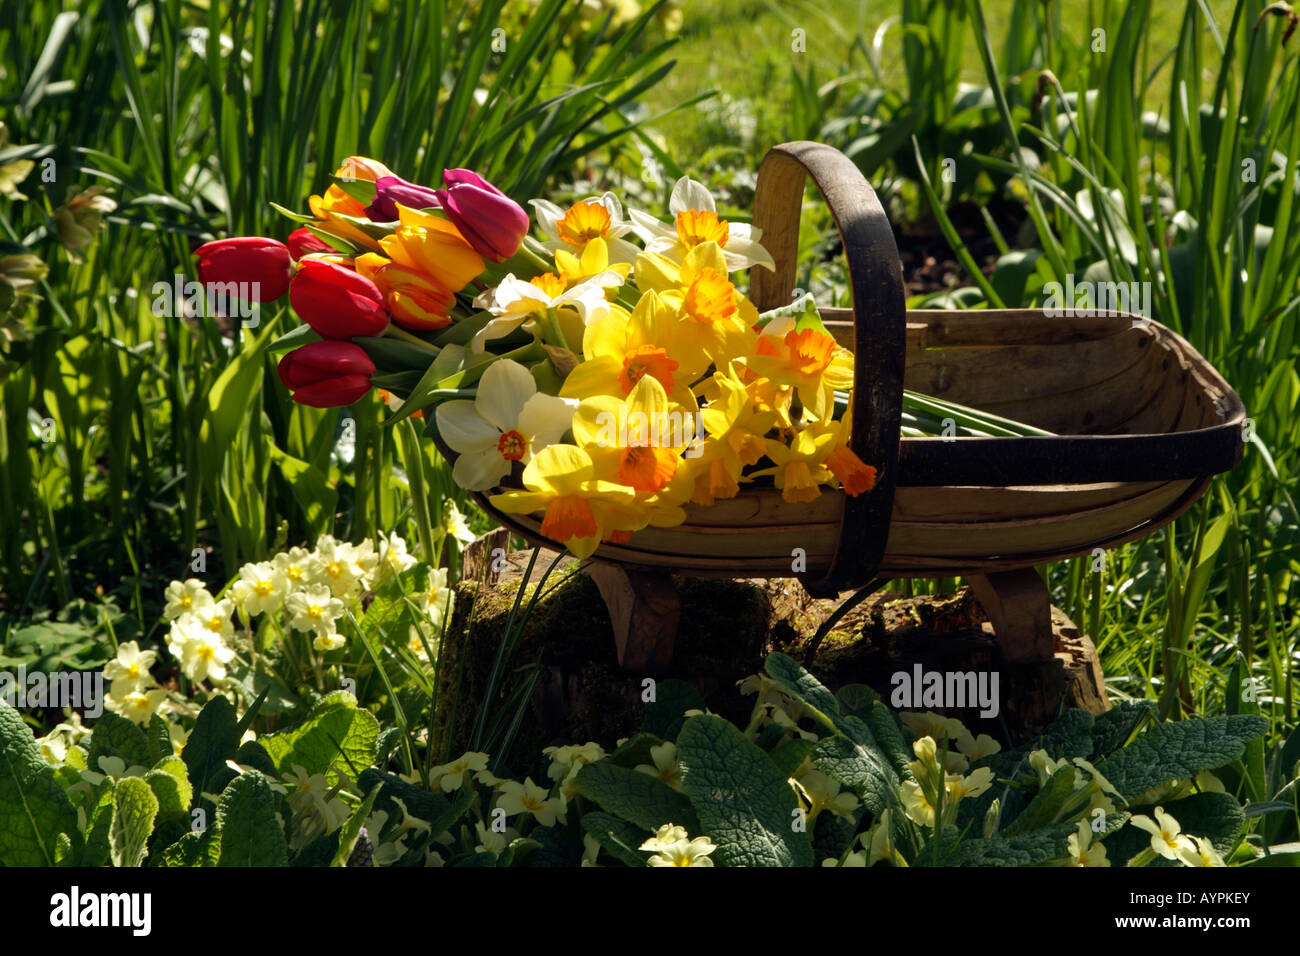 english country garden stockfotos english country garden bilder alamy. Black Bedroom Furniture Sets. Home Design Ideas